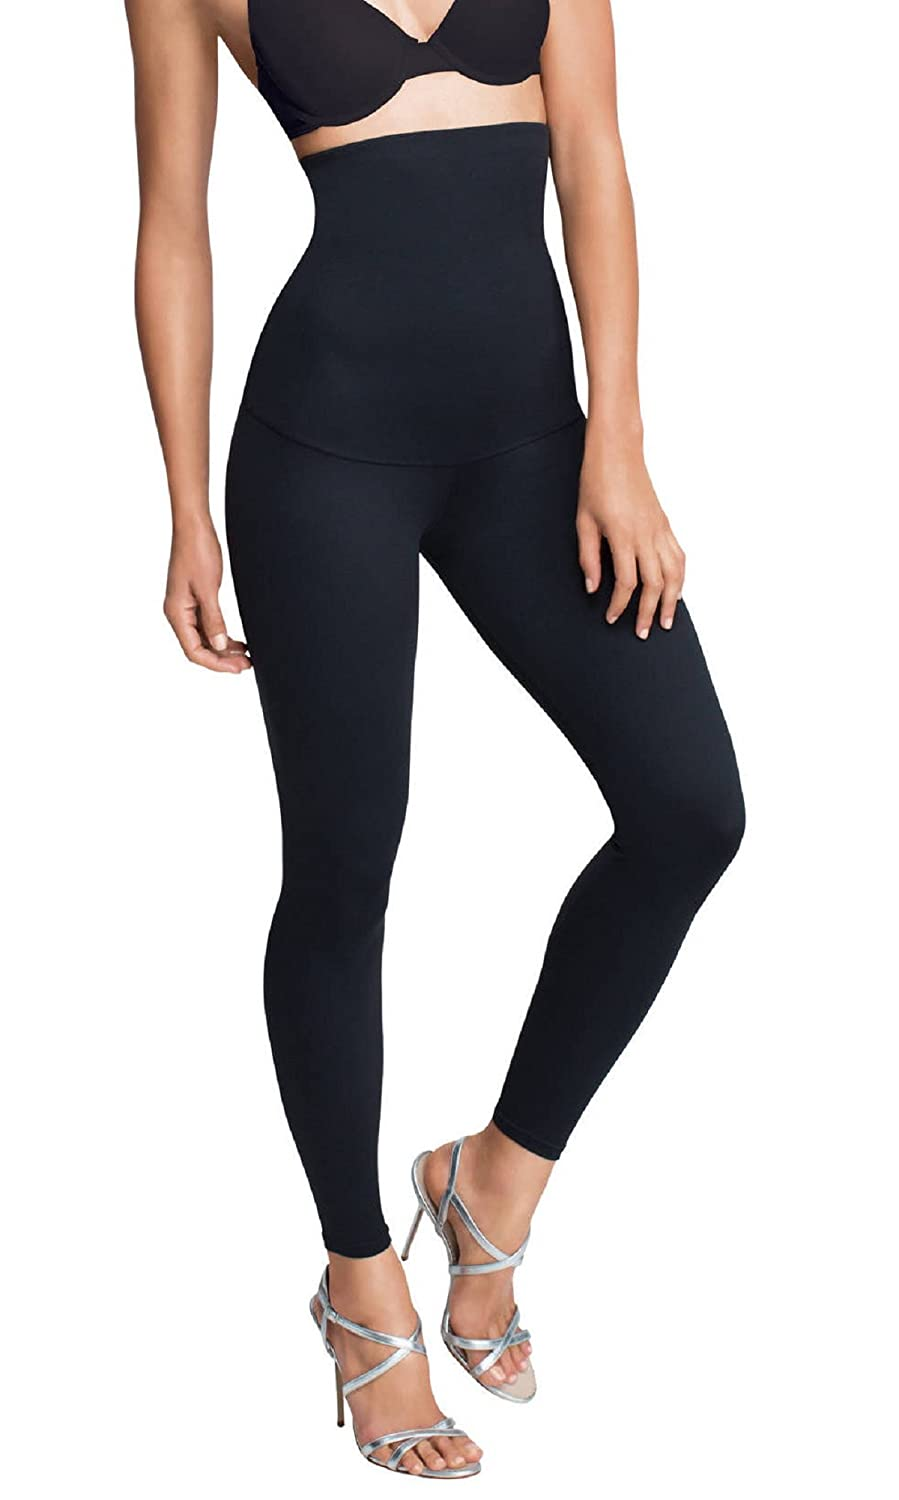 Minimize Slimming Leggings Women Ladies Belly Busting Anti-Cellulite Firming Smoothing Seamless, High Waist Shape, Tummy Support (Set of 1 Black S-3XL)